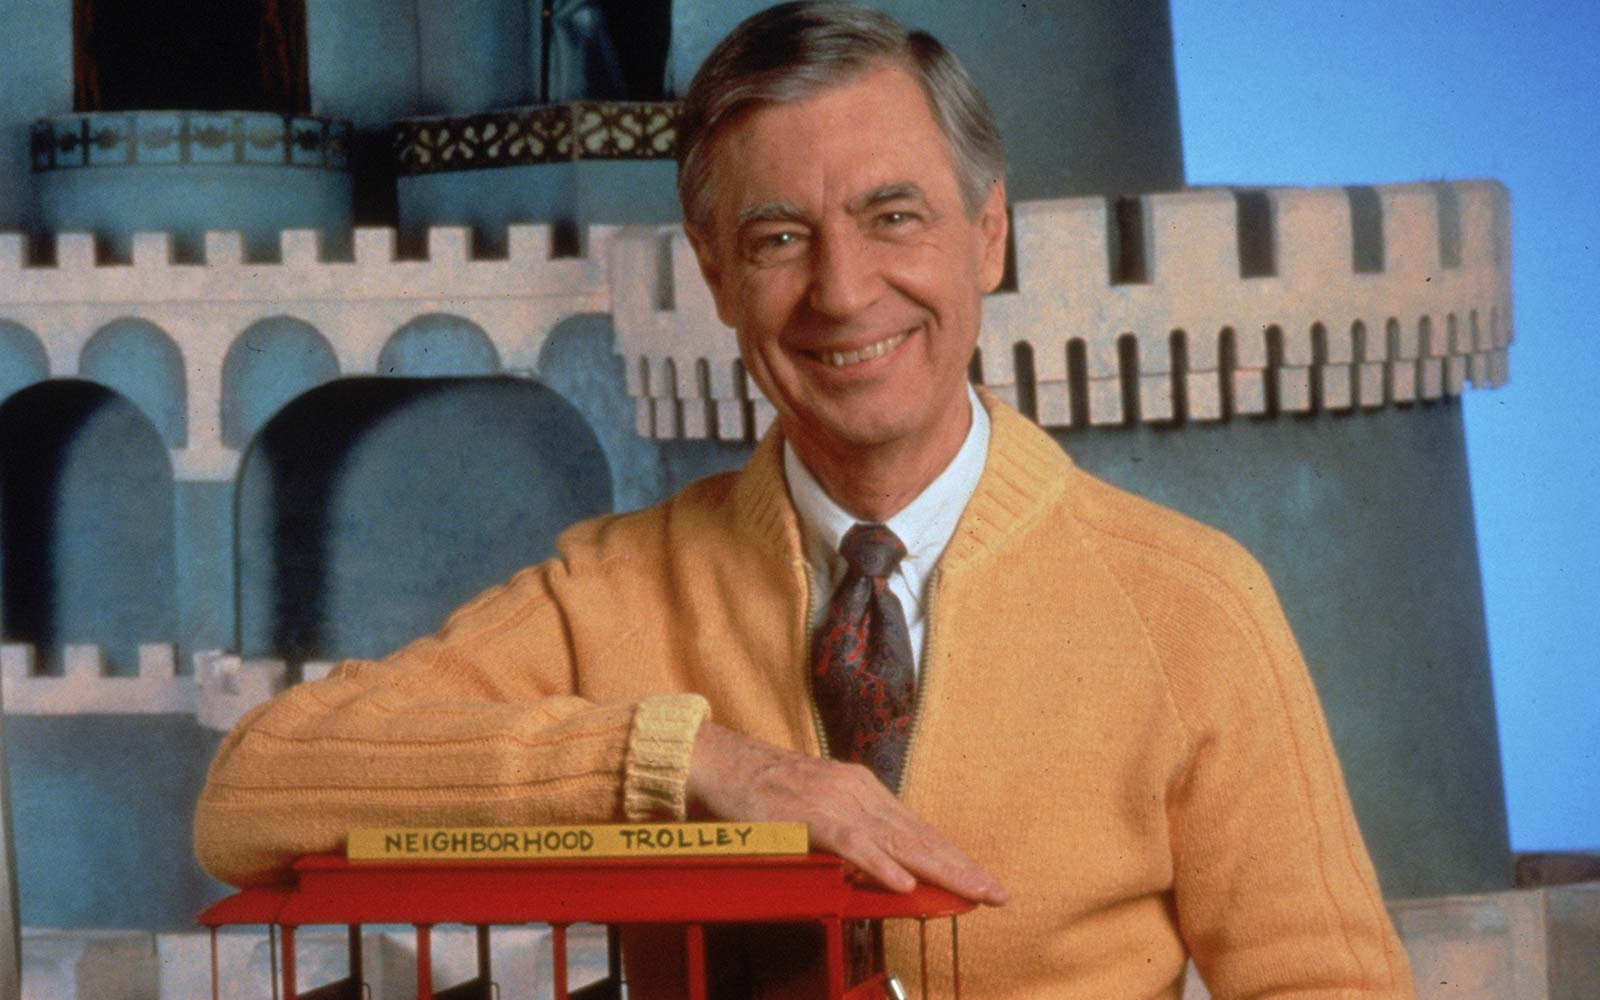 Mr. Rogers Got an Adorable Tribute at the Pittsburgh Airport